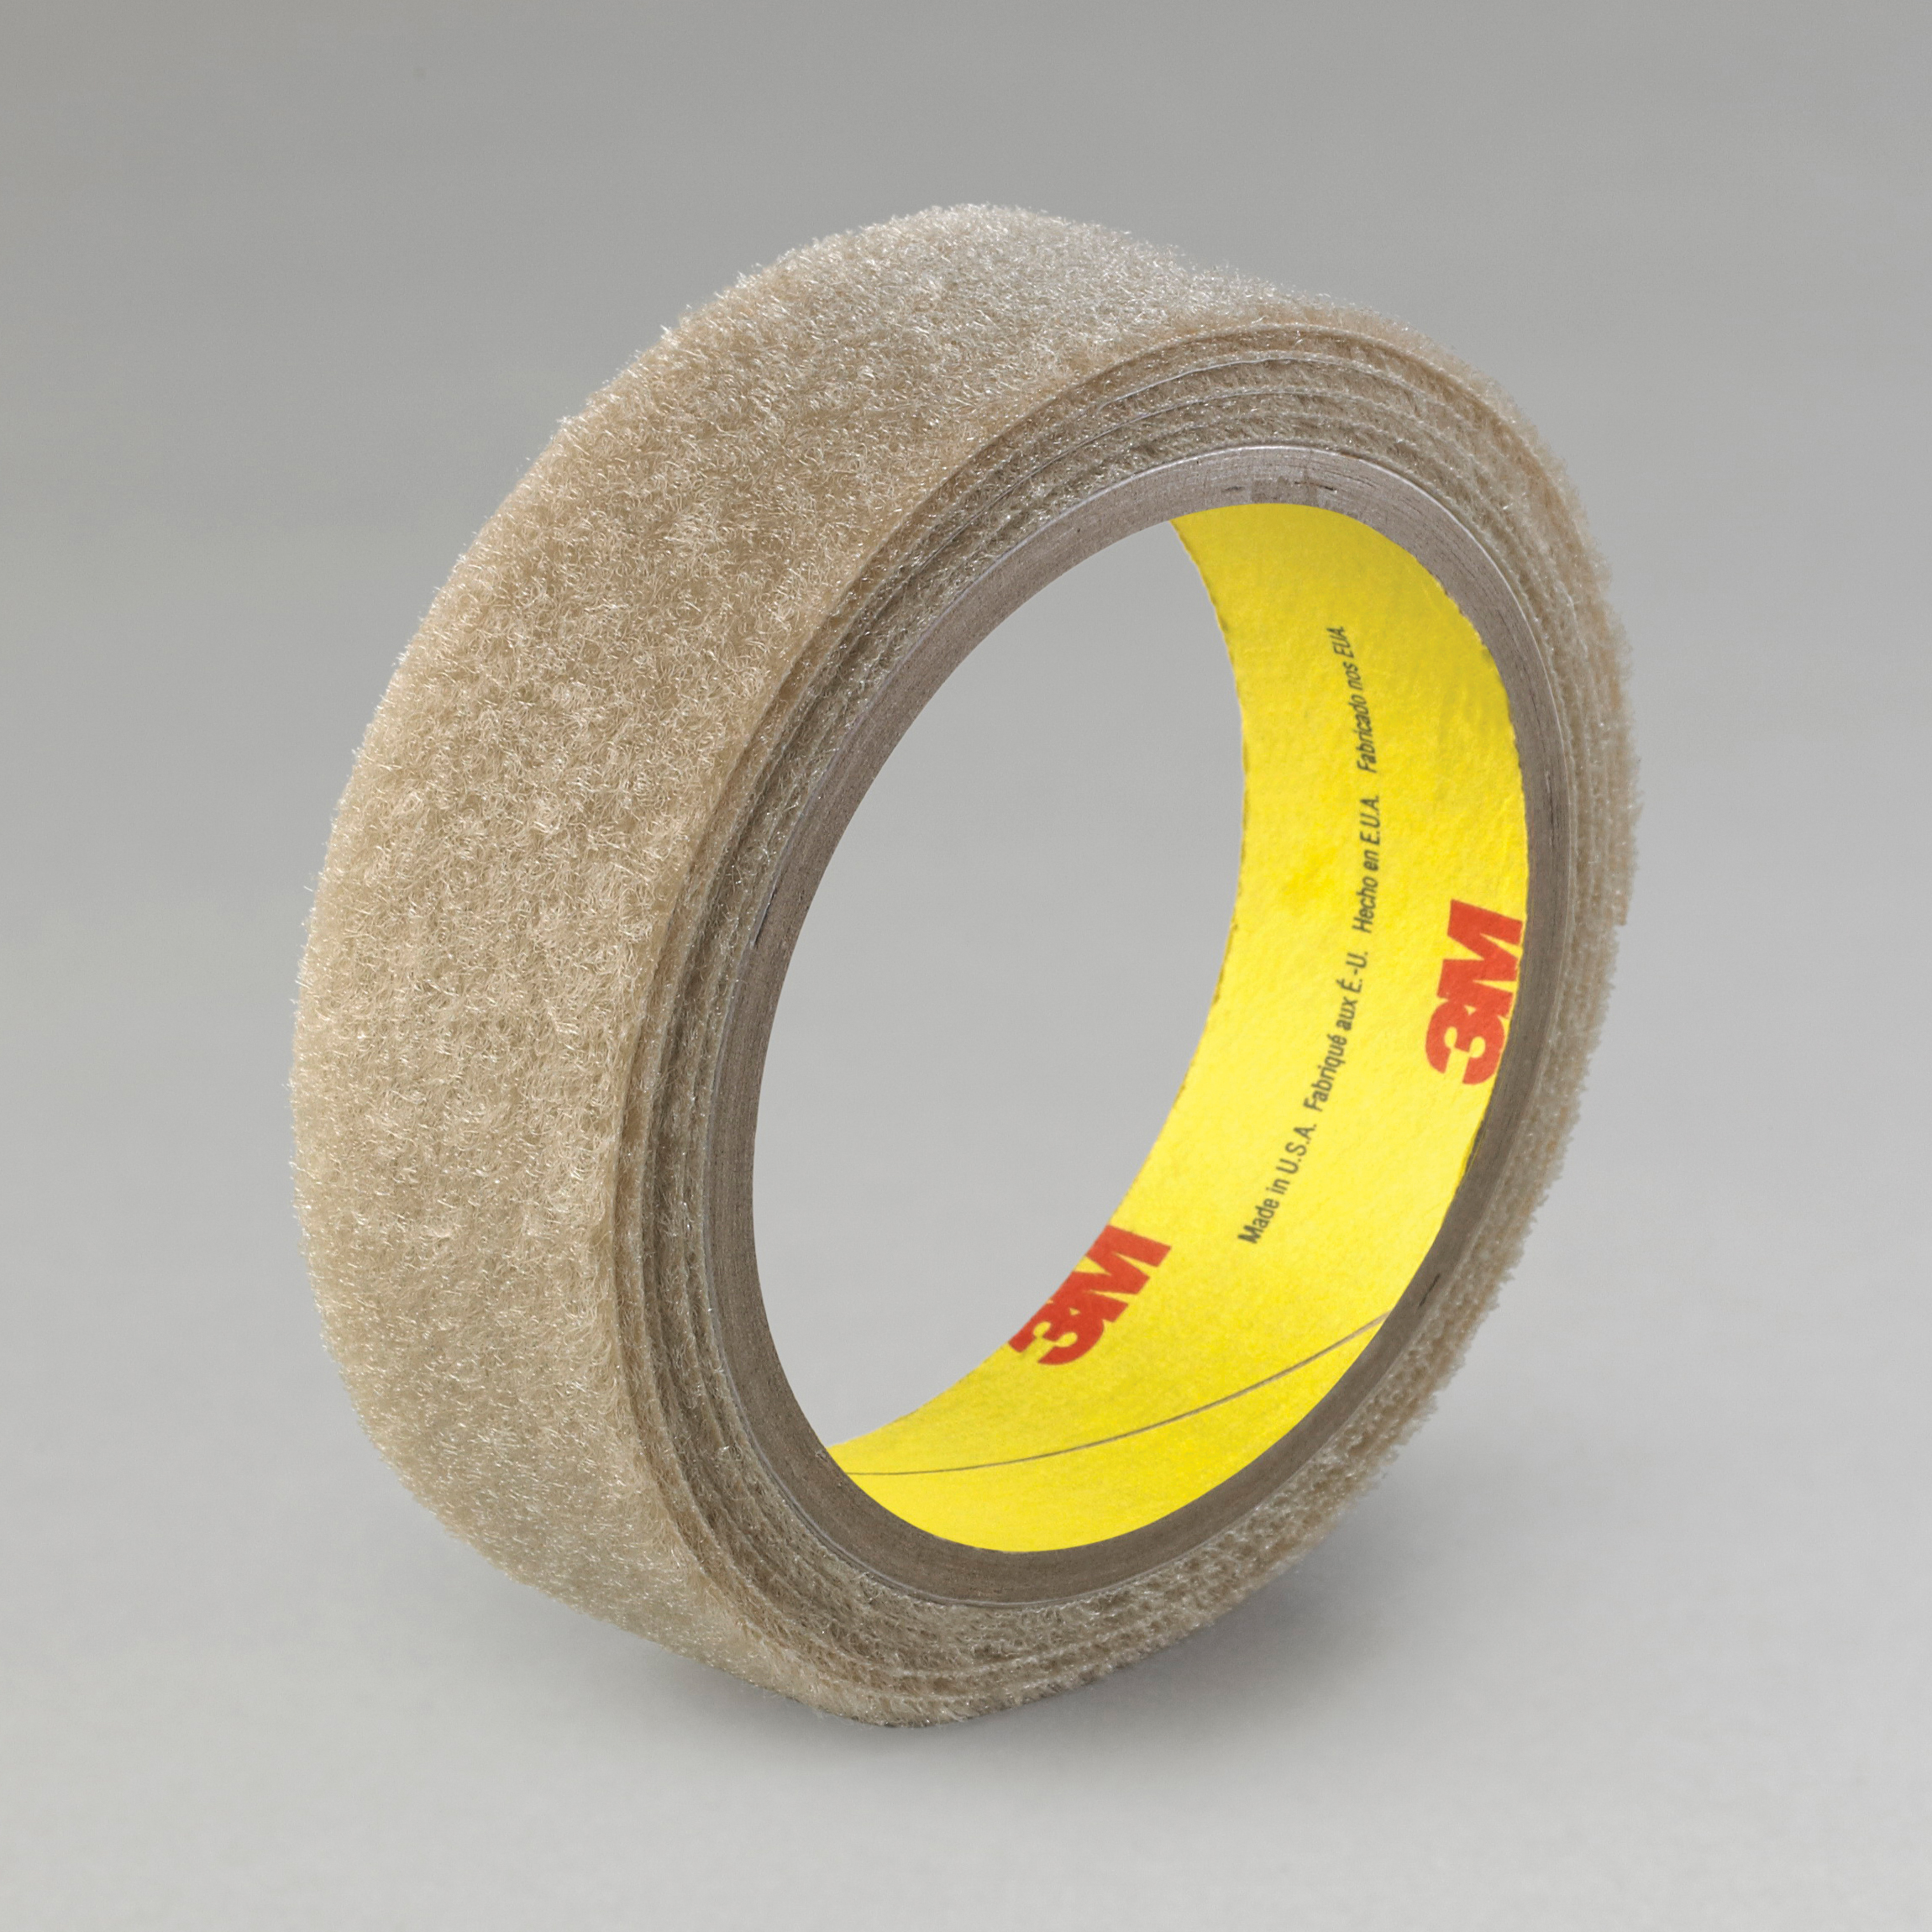 3M™ 021200-86265 Reclosable Loop Fastener Tape, 50 yd L x 1 in W, 0.15 in THK Engaged, Synthetic Rubber Adhesive, Woven Nylon Backing, Beige